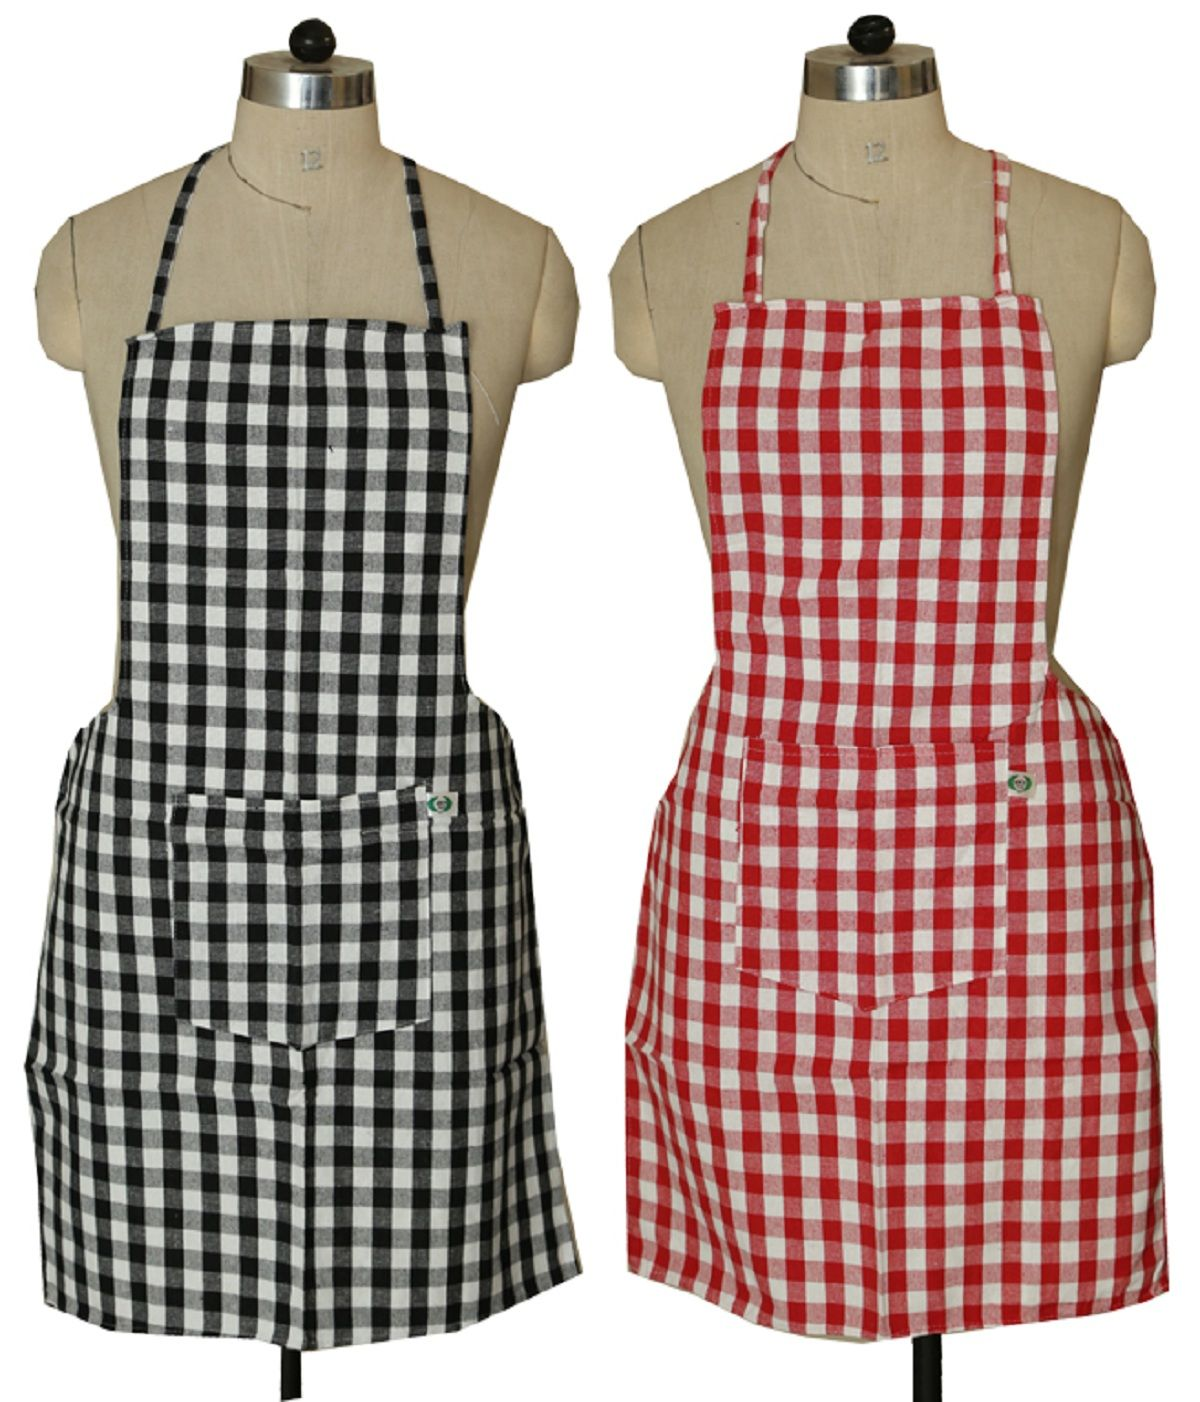 kitchen aprons particle board cabinets kuber industries check design apron with front pocket set of 2 pcs black